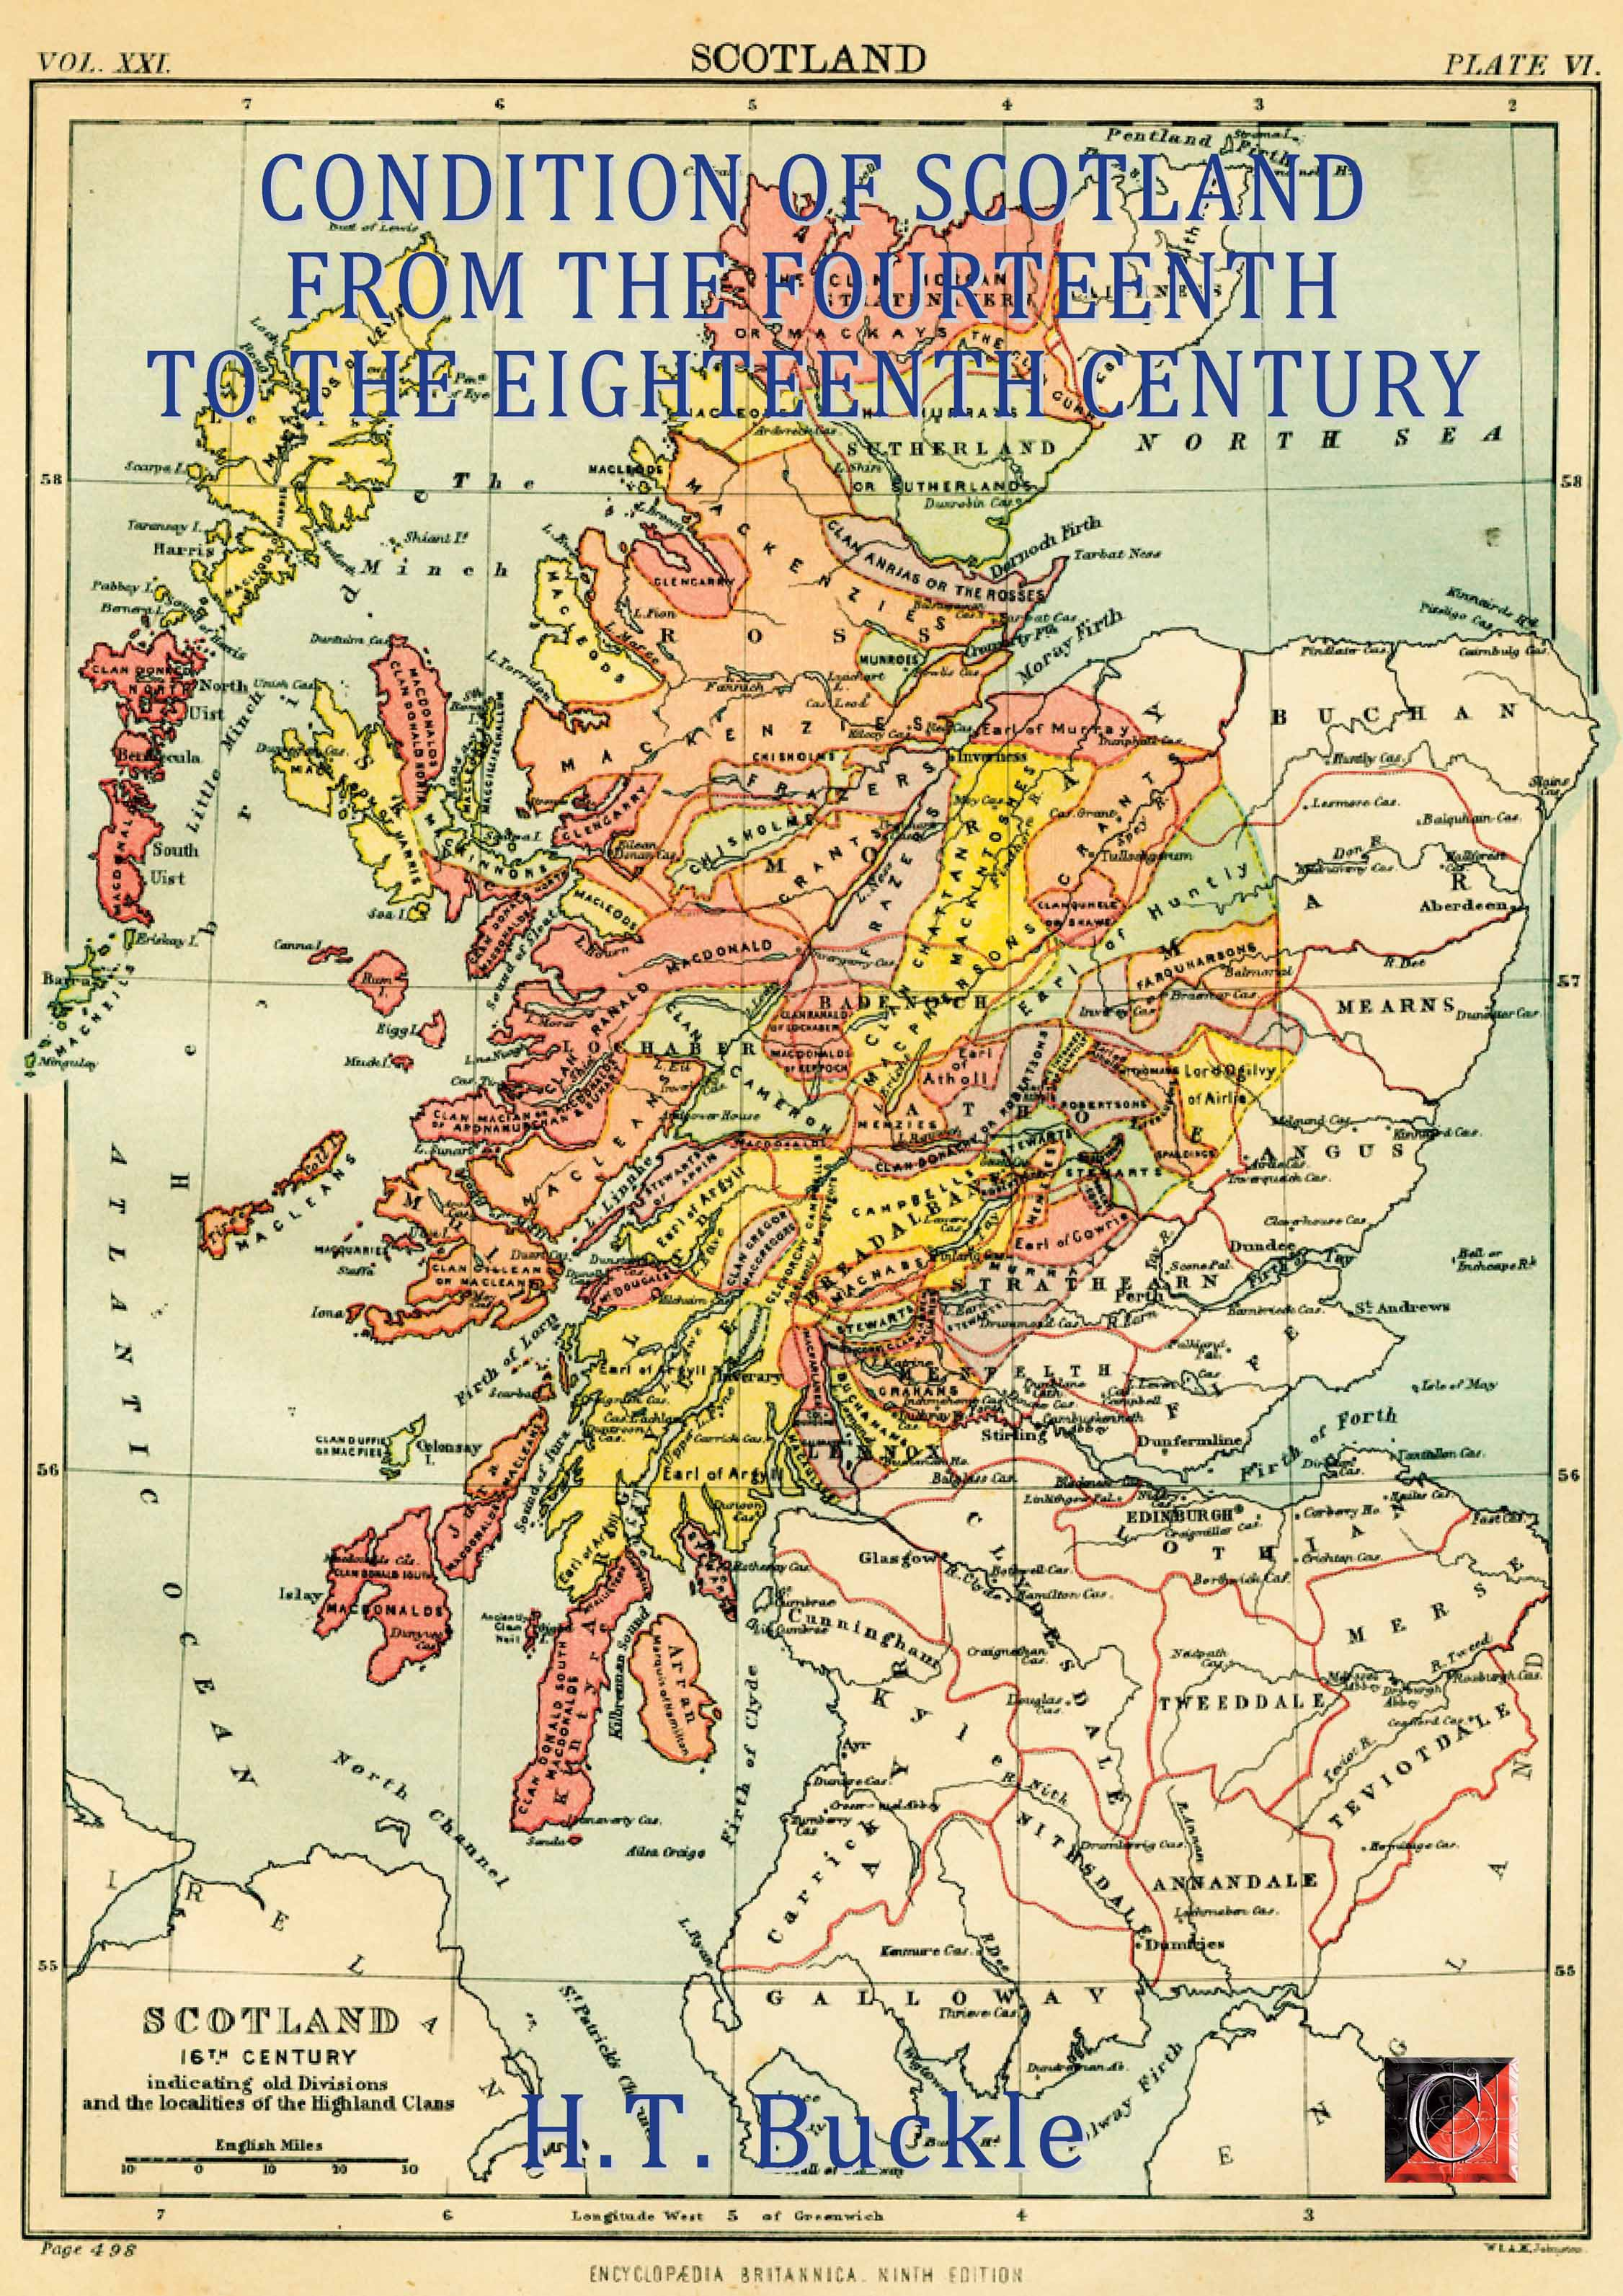 CONDITION OF SCOTLAND FROM THE FOURTEENTH   TO THE EIGHTEENTH CENTURY — H.T. Buckle